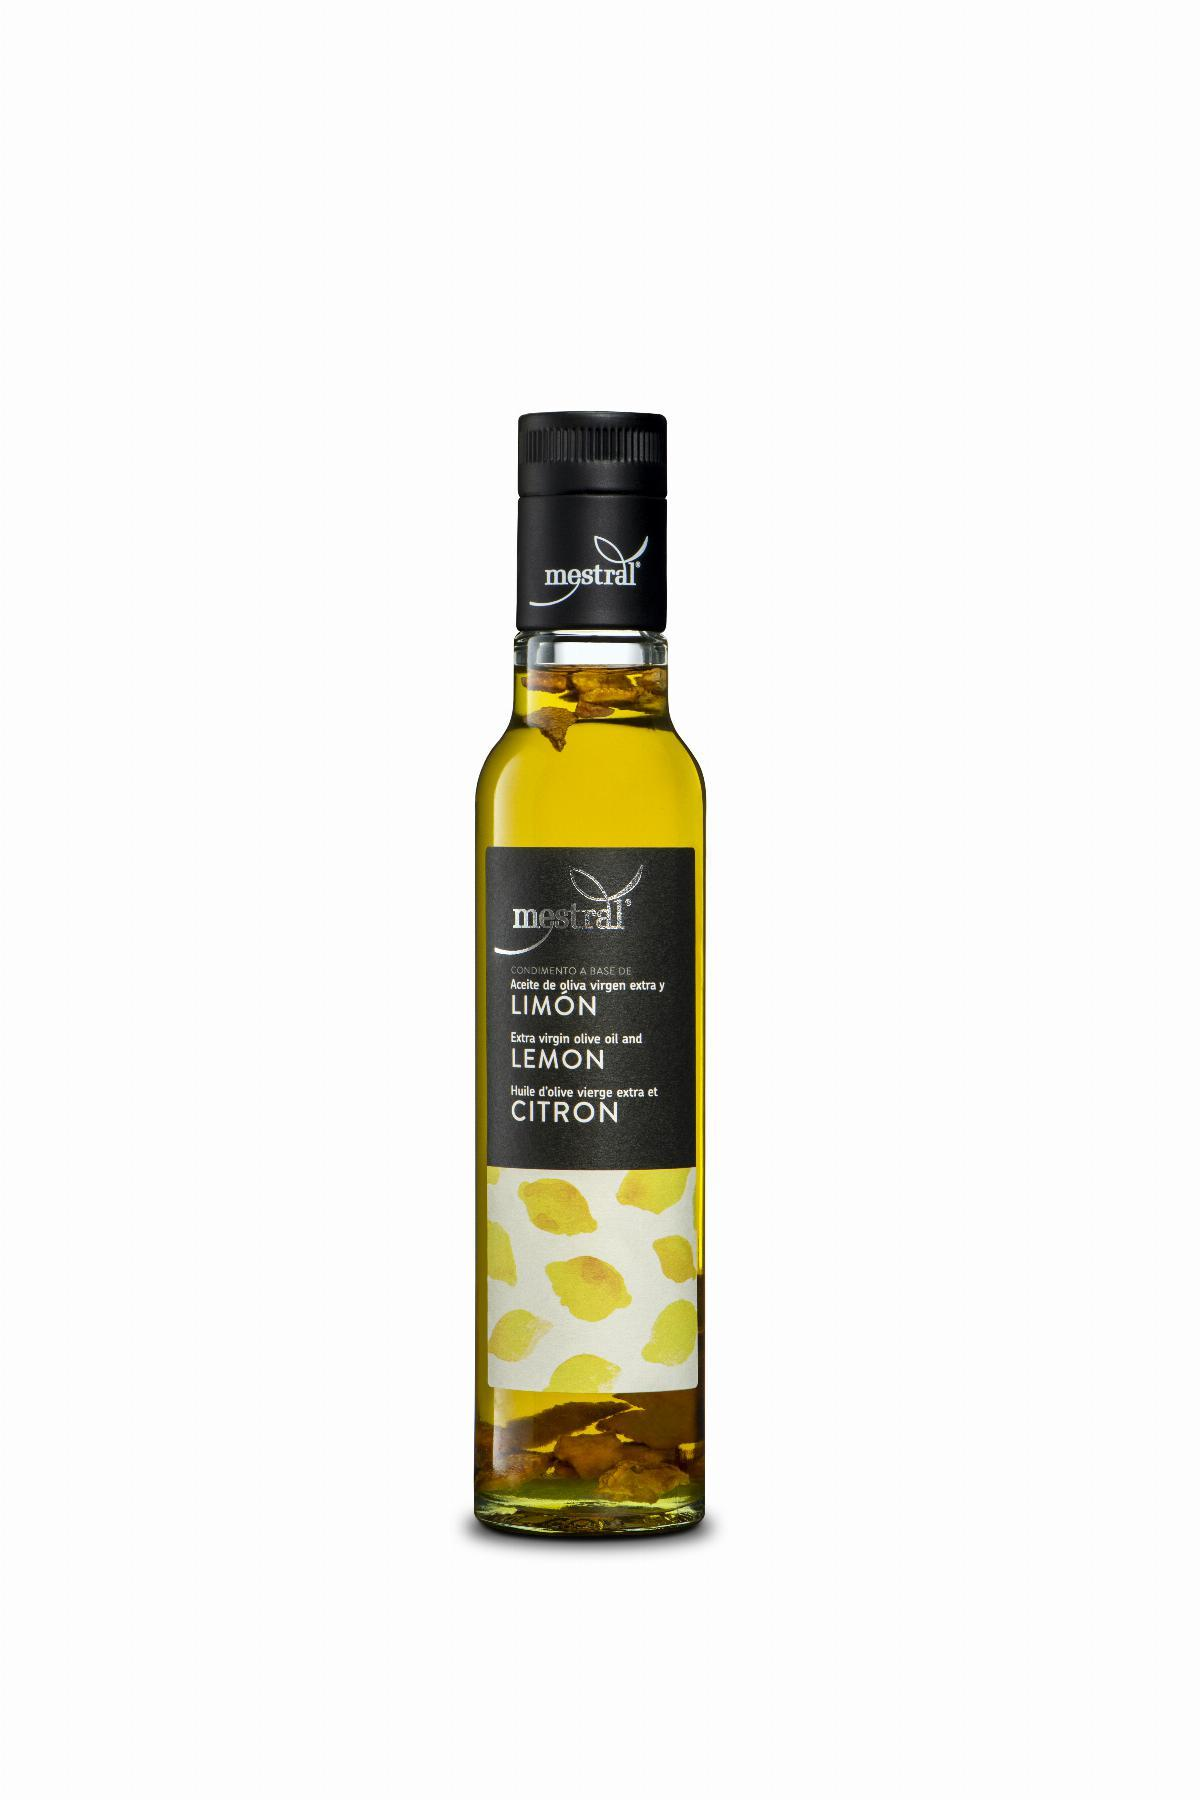 Olive Oil & Seasonings - Mestral Extra Virgin Olive Oil and Lemon, bot. 250ml - Mestral Cambrils